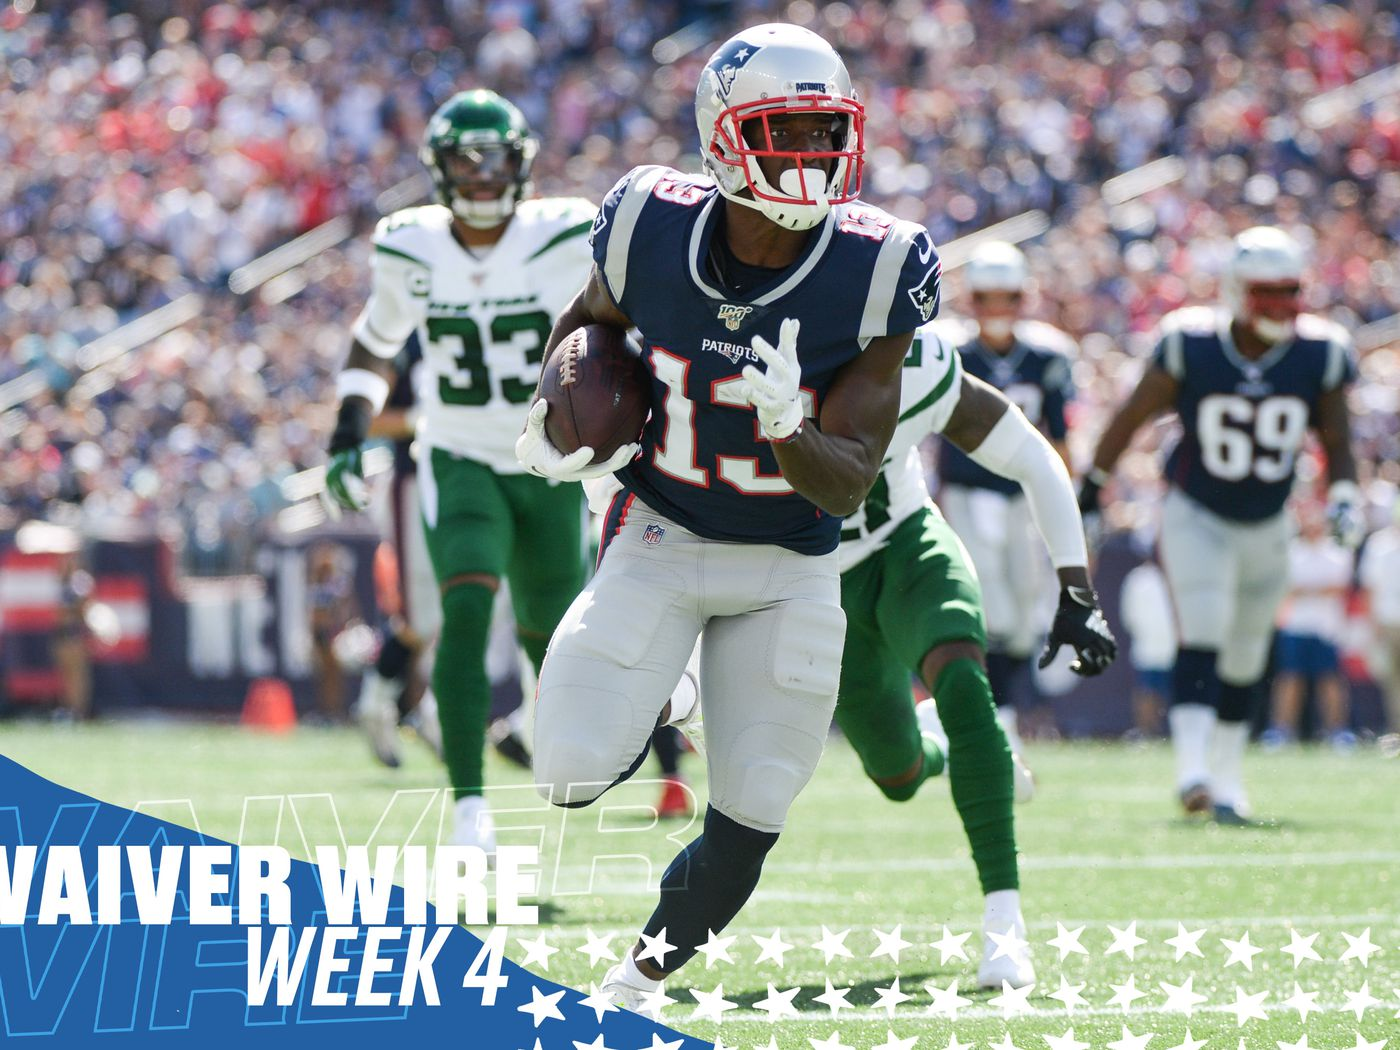 promo code f9b2f 7548a Top fantasy football waiver wire adds for Week 4 - Fake Teams